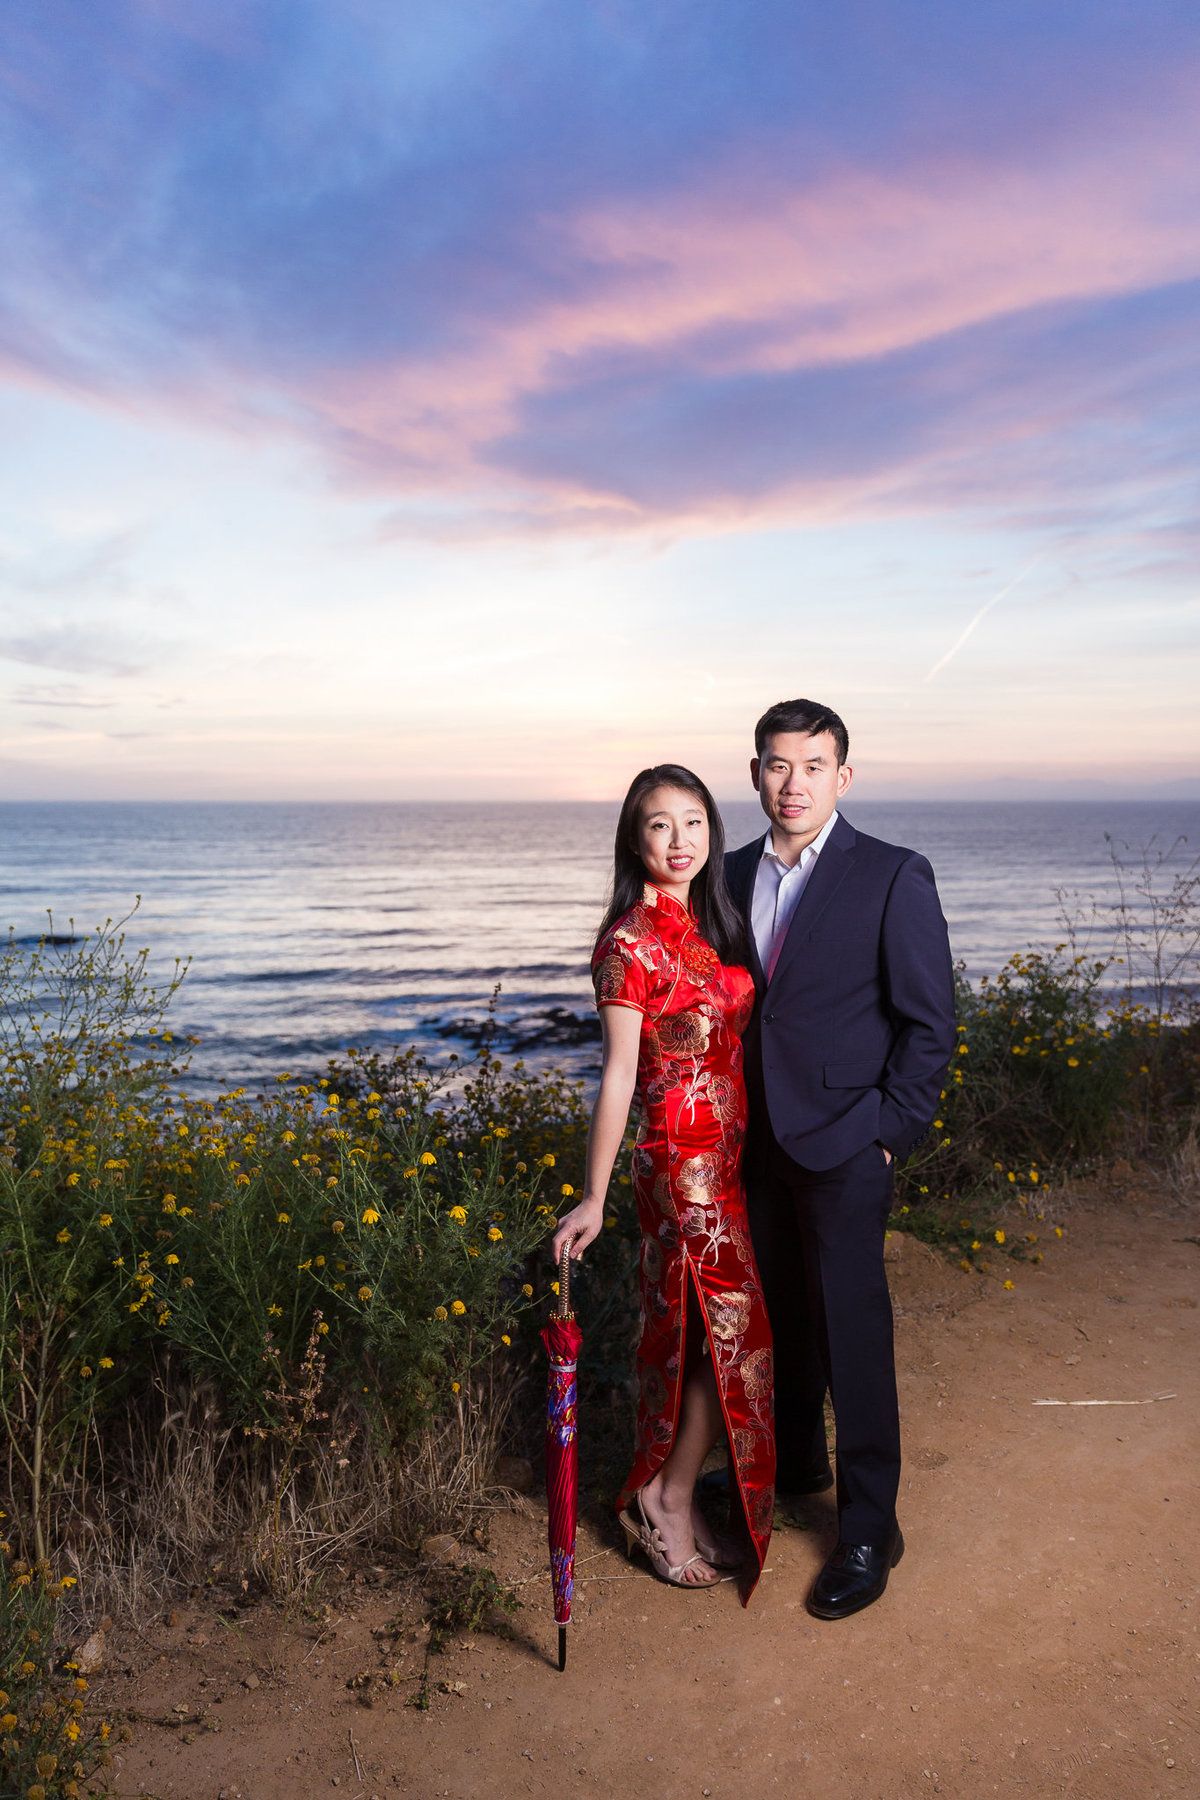 Pamela_Robert_Palos_Verdes_Point_Vincente_Lighthouse_Engagement-2628